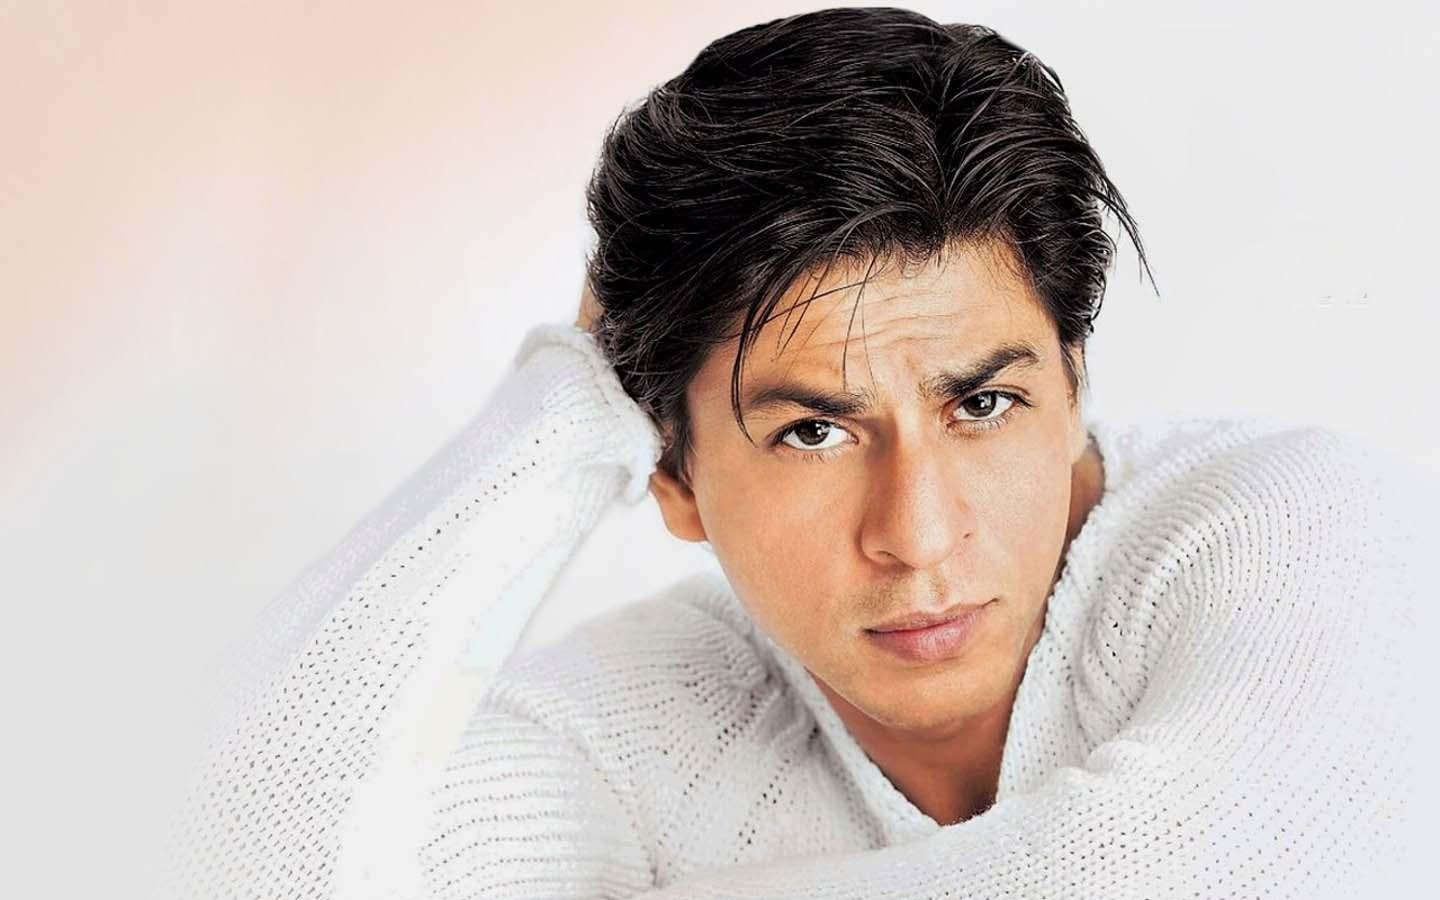 10 Most Unusual Facts About Srk You Have Never Heard